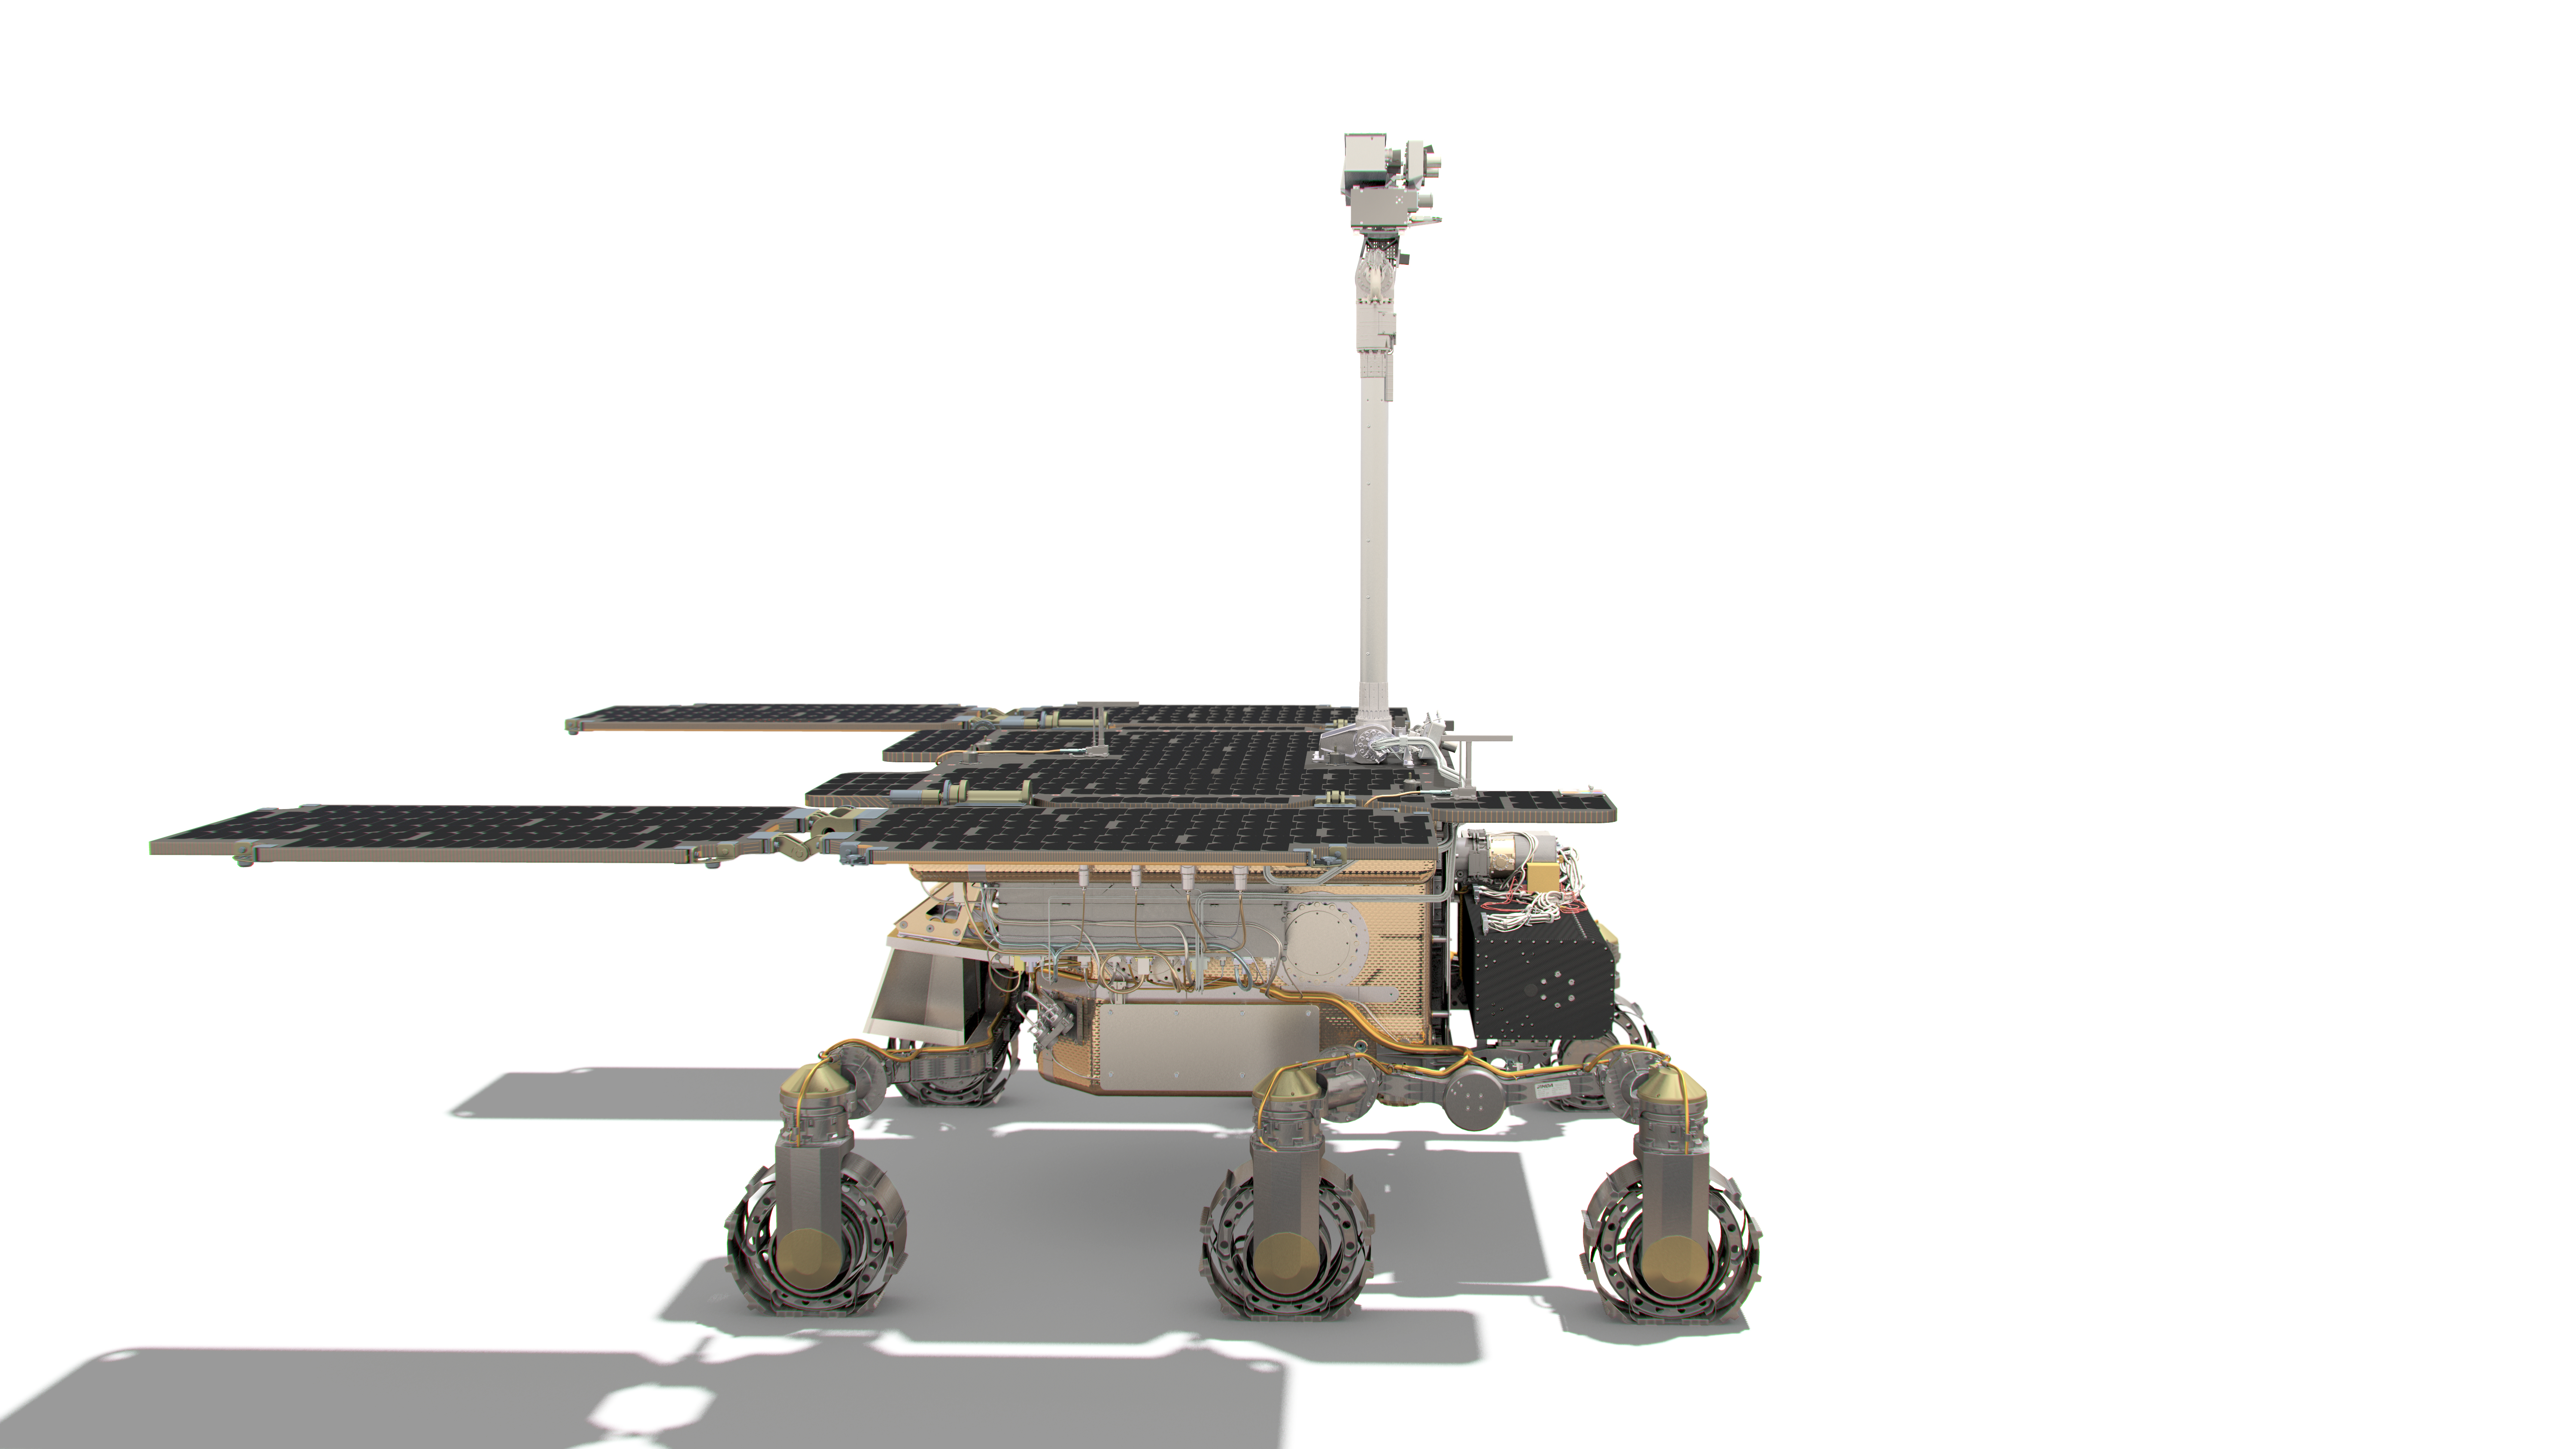 Space In Images 2017 03 Exomars Rover Side View